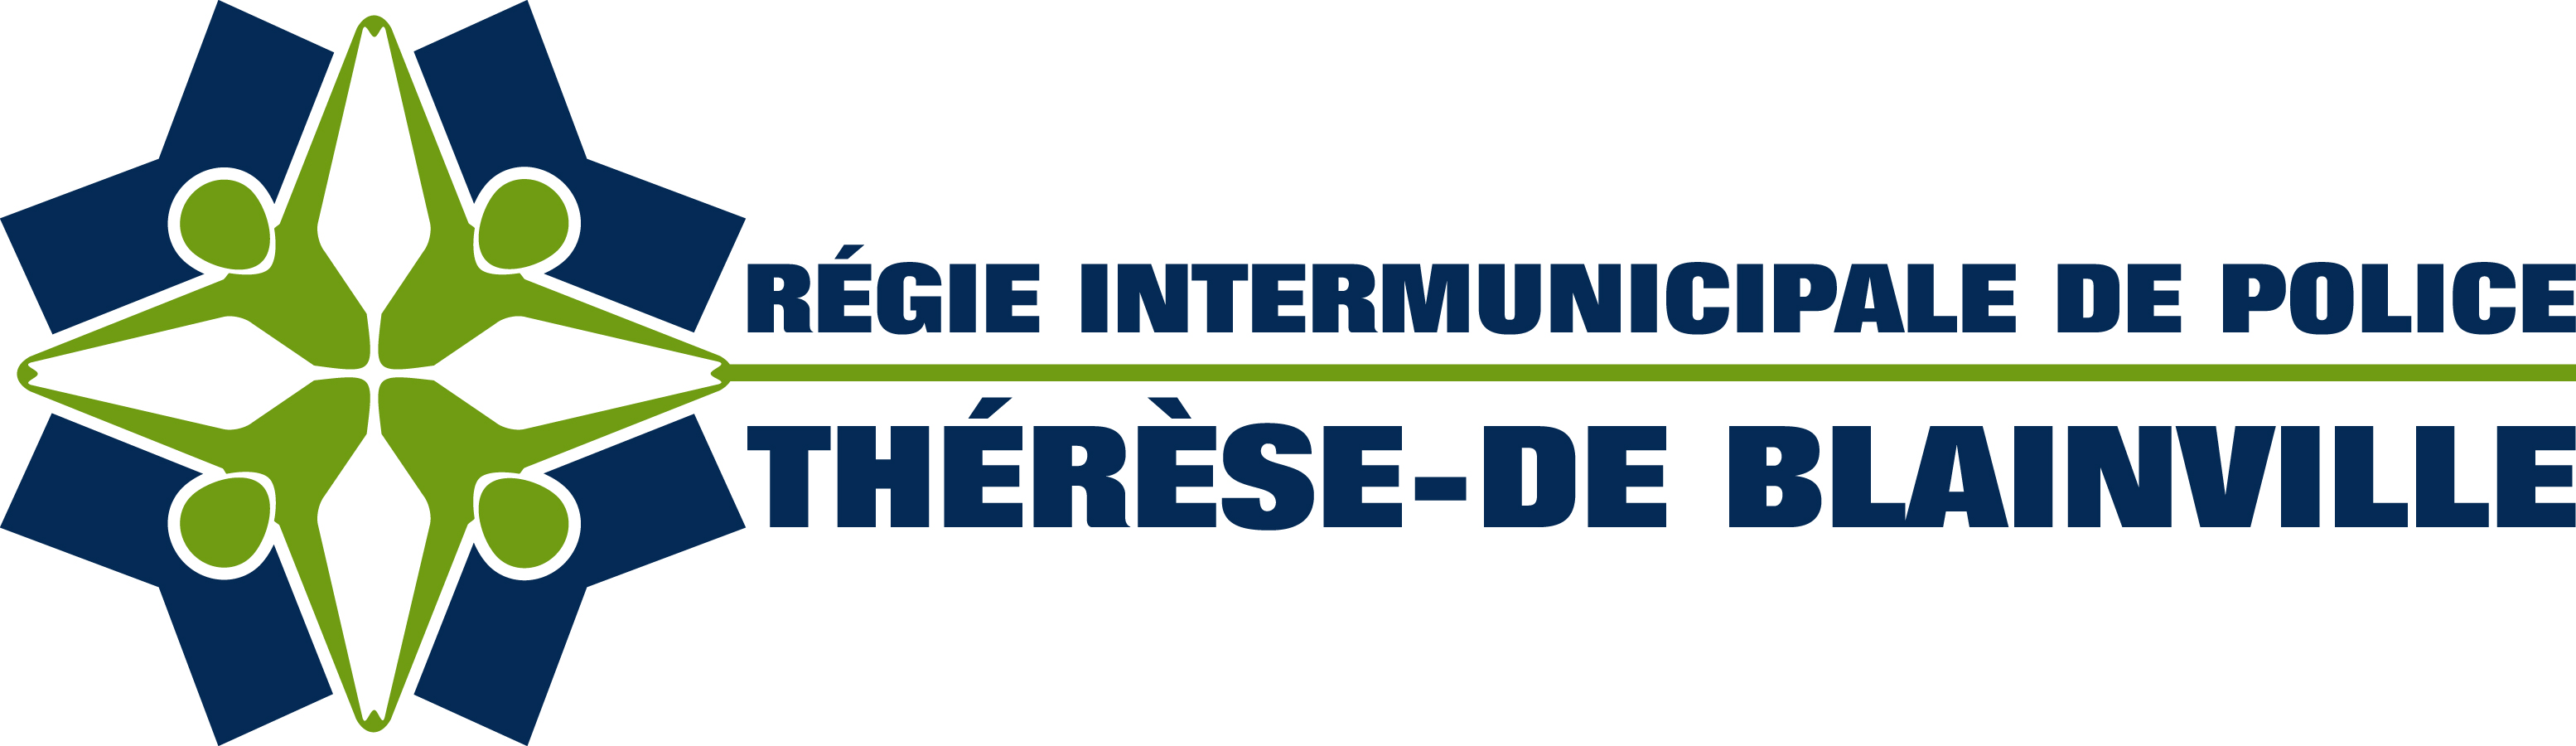 REGIE-logo officiel.jpg